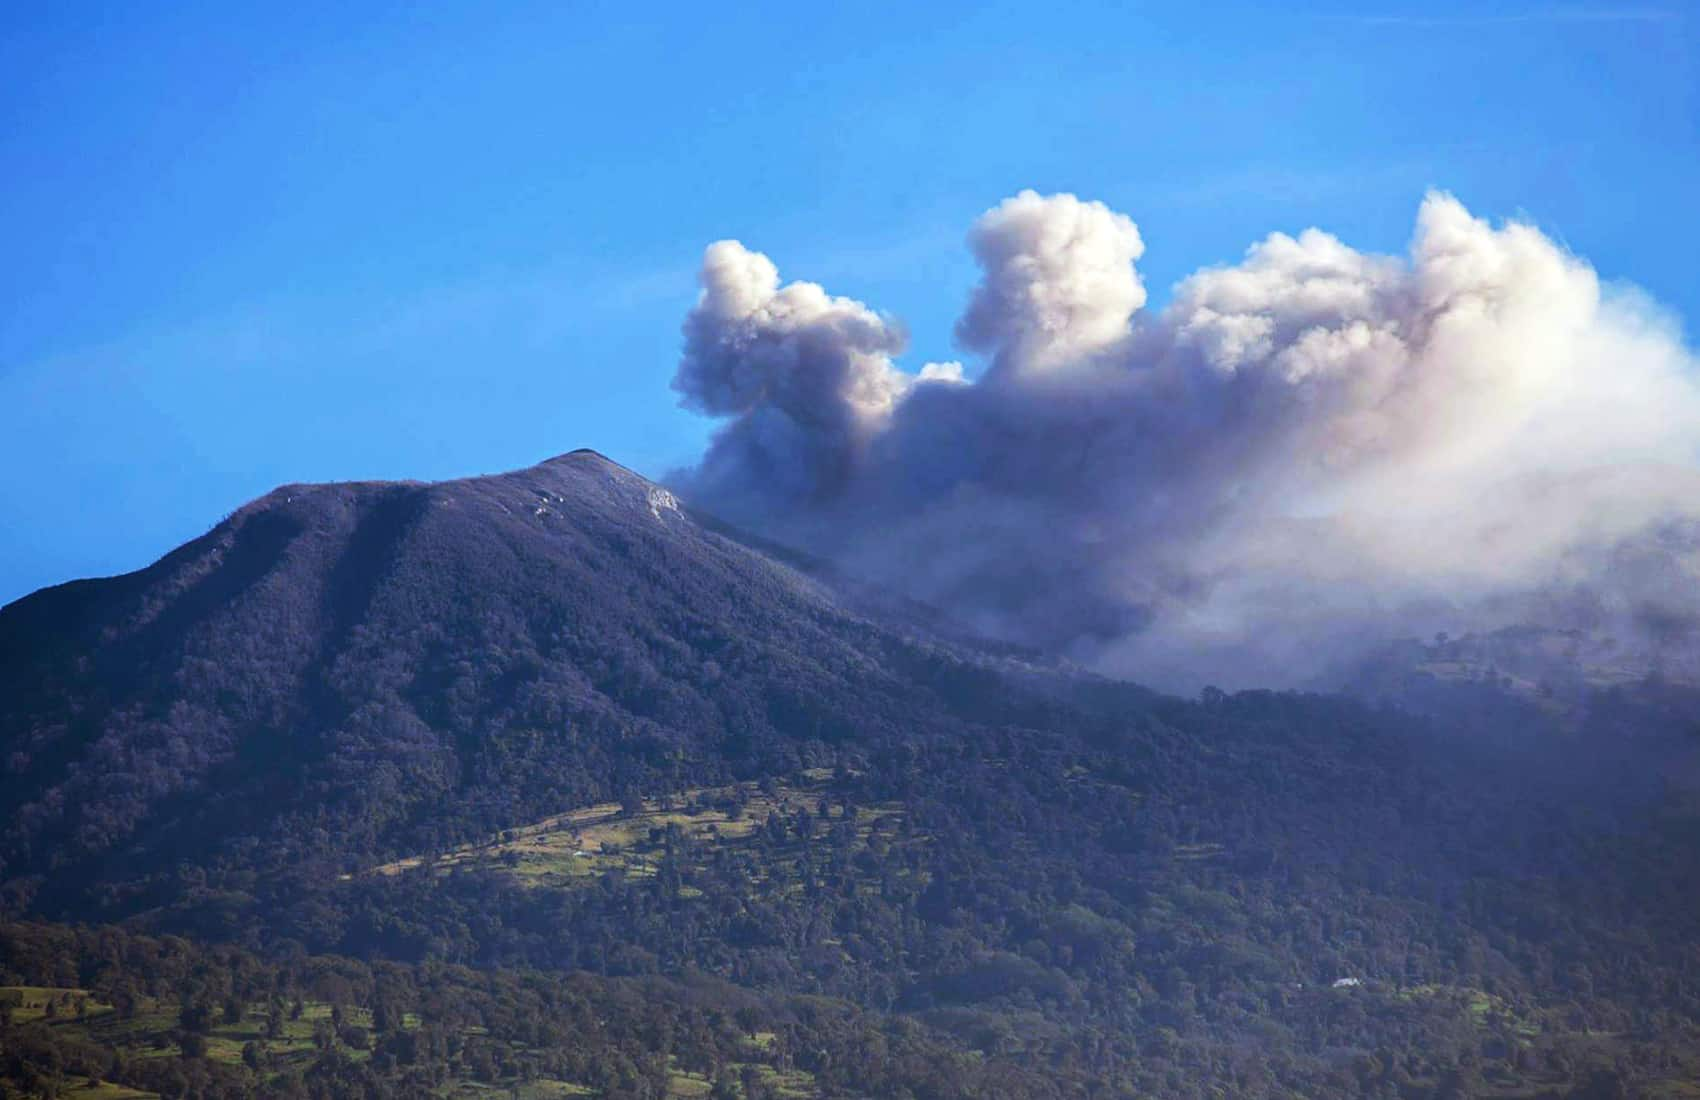 Ash explosion at Turrialba Volcano. Mar. 29, 2017.